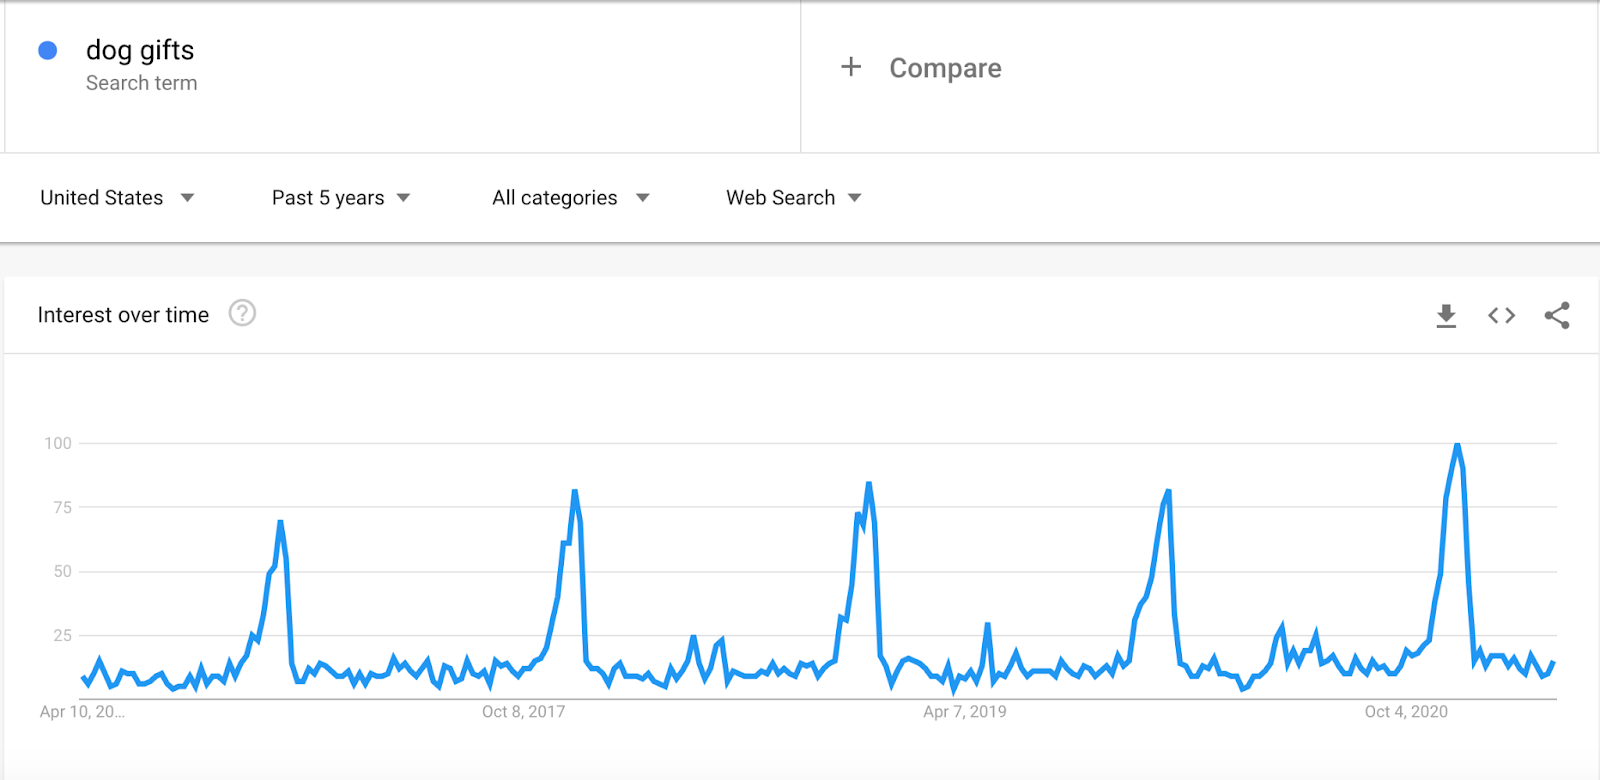 Image of google trends data